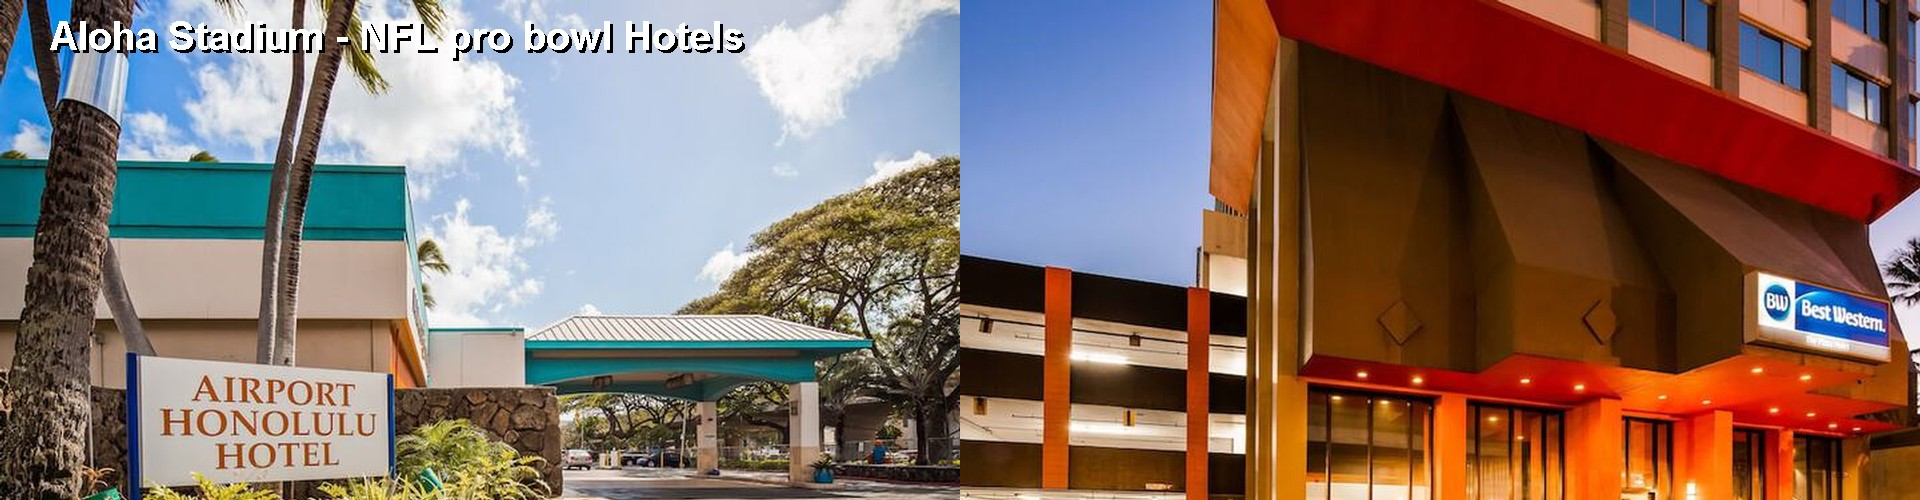 5 Best Hotels near Aloha Stadium - NFL pro bowl